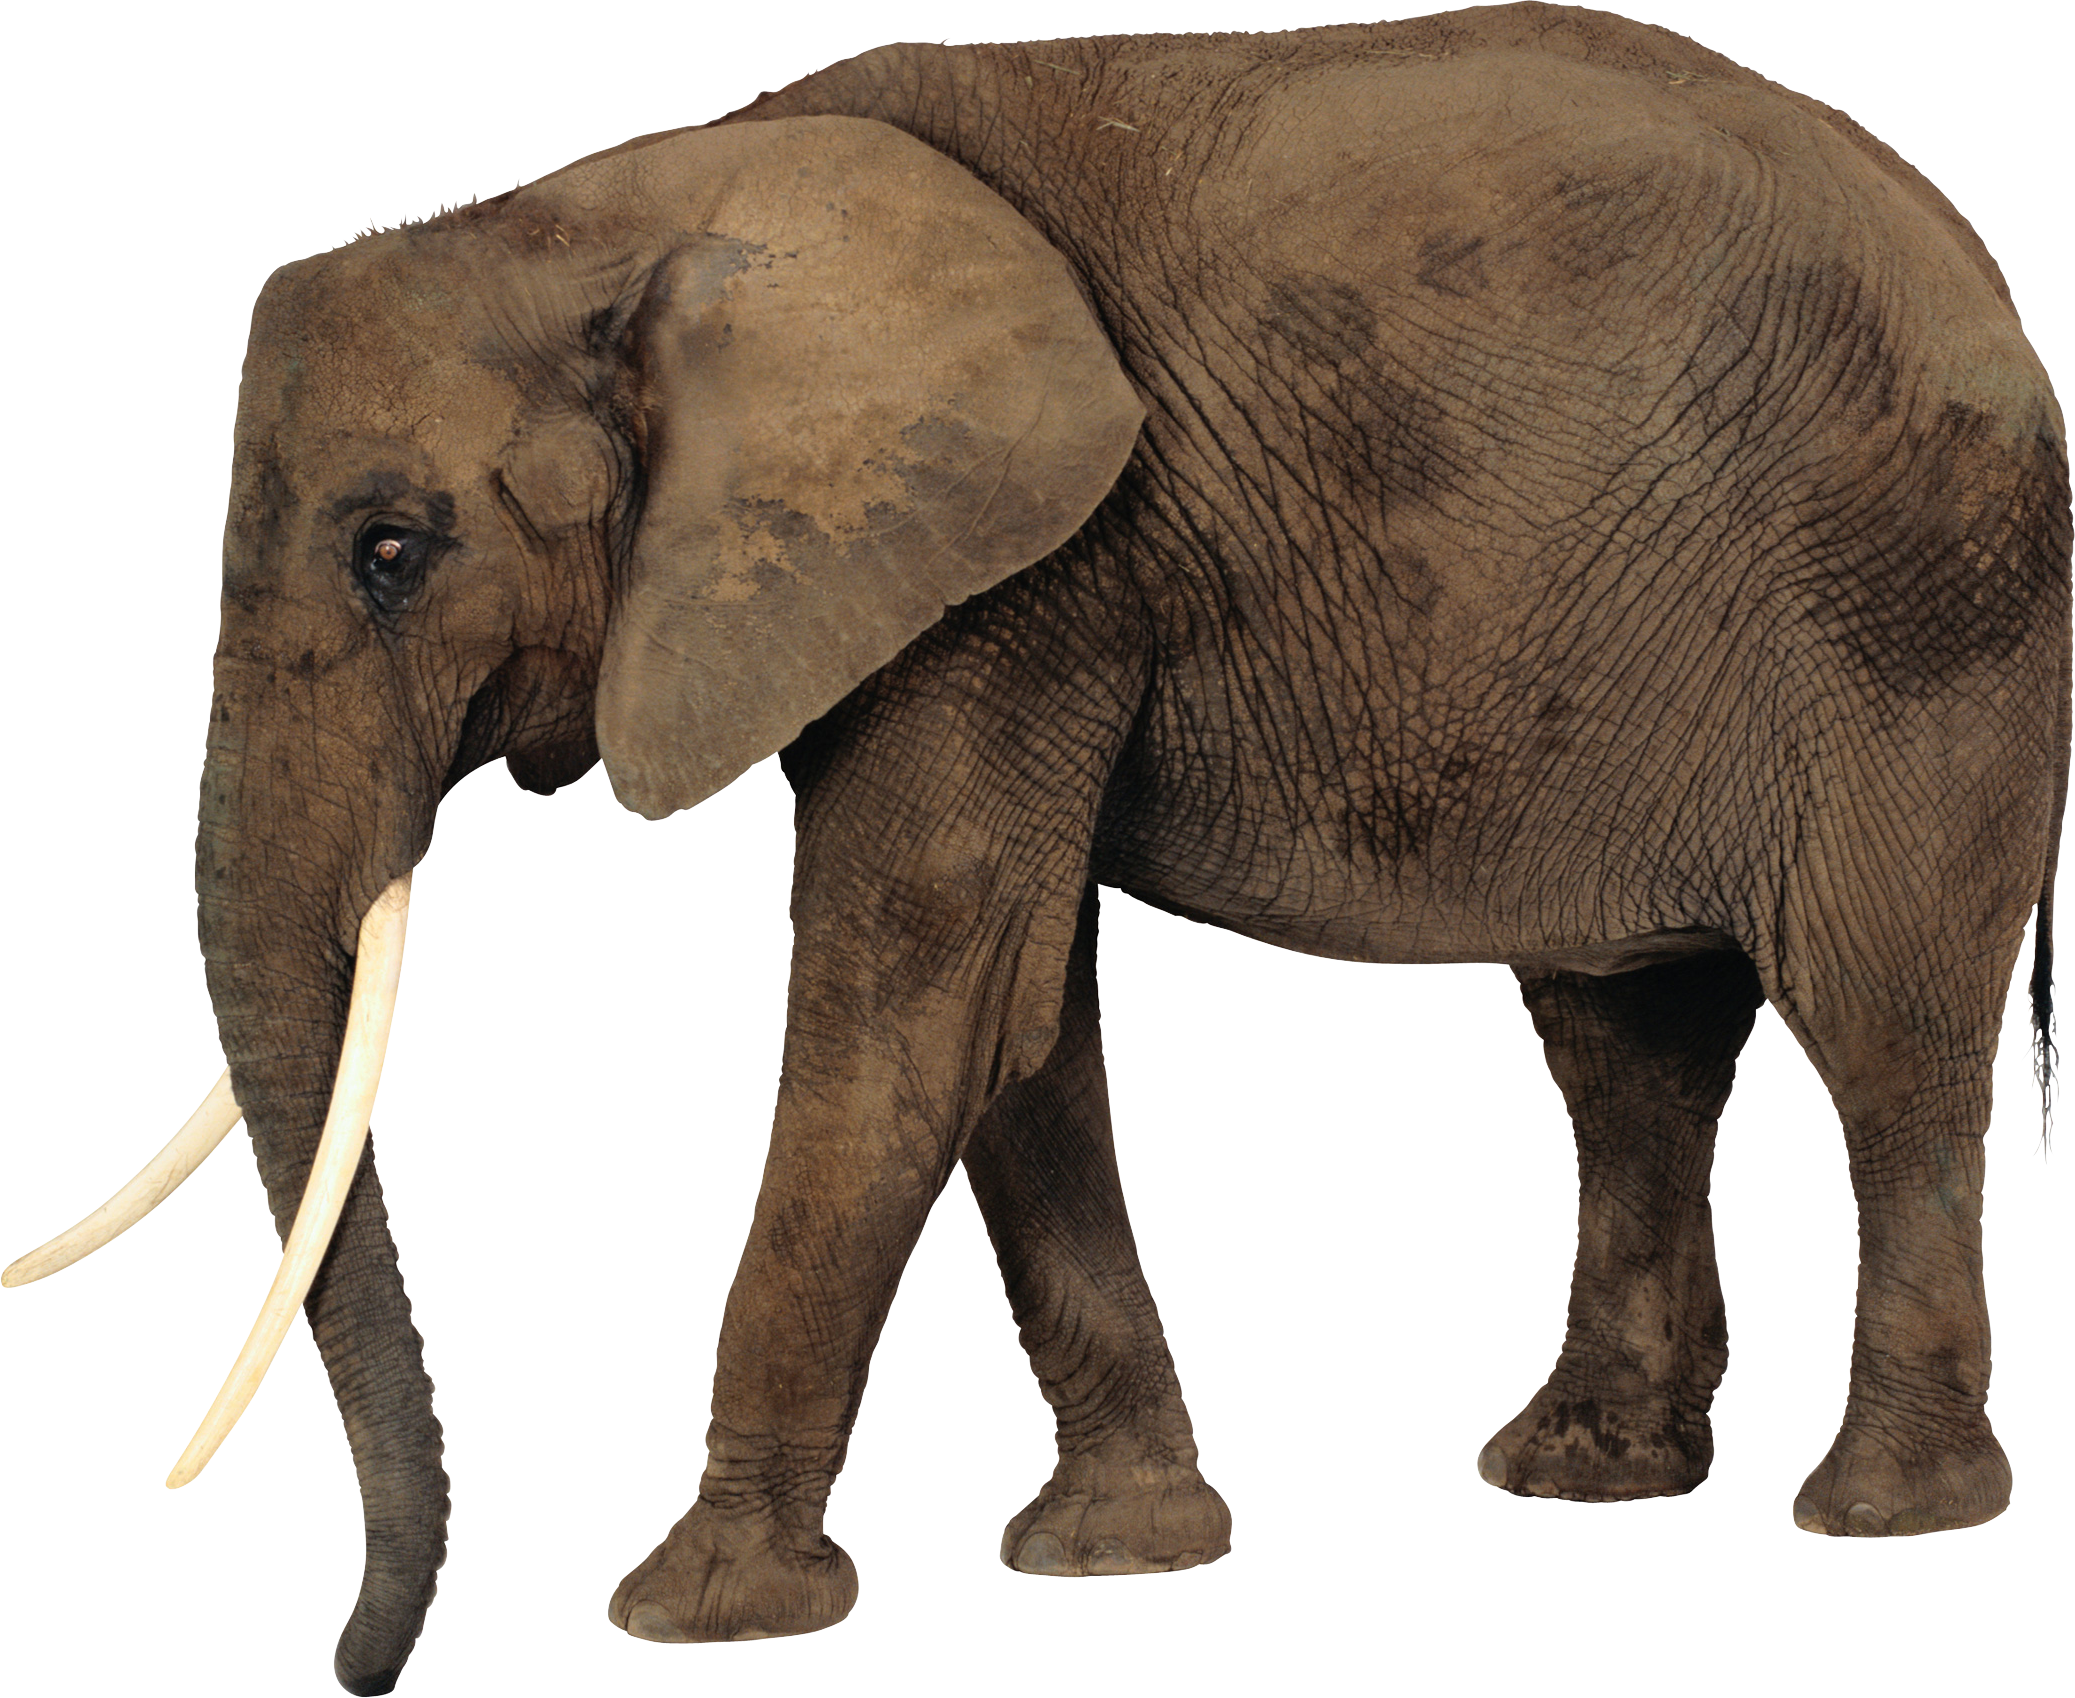 Elephants PNG images free download, Elephant PNG.